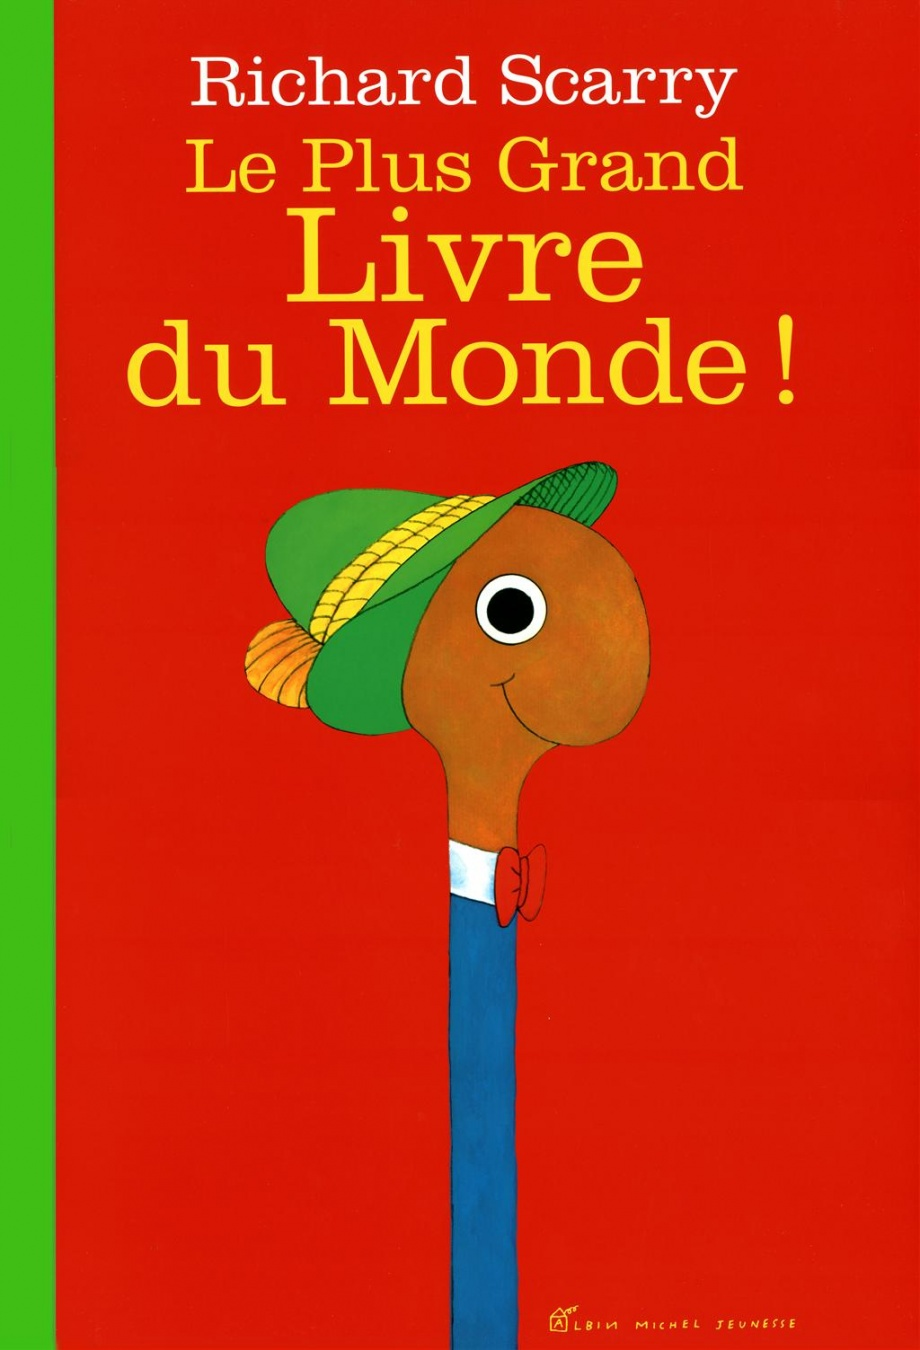 Le plus grand livre du monde par Richard Scarry